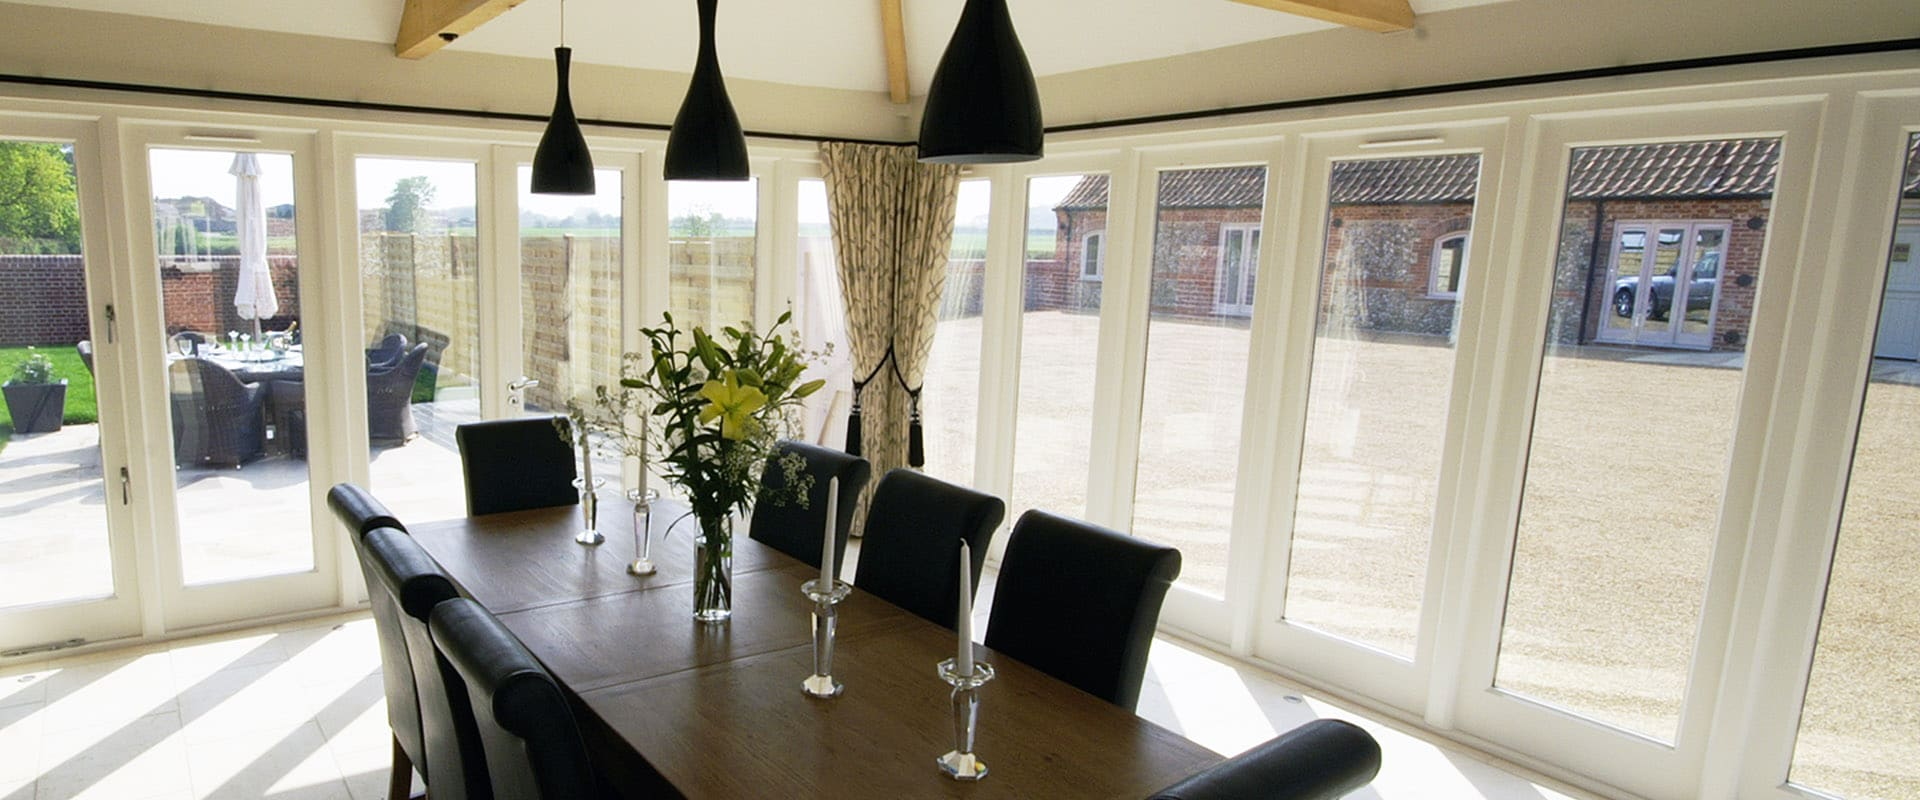 The Lodge - Panoramic Dining Room